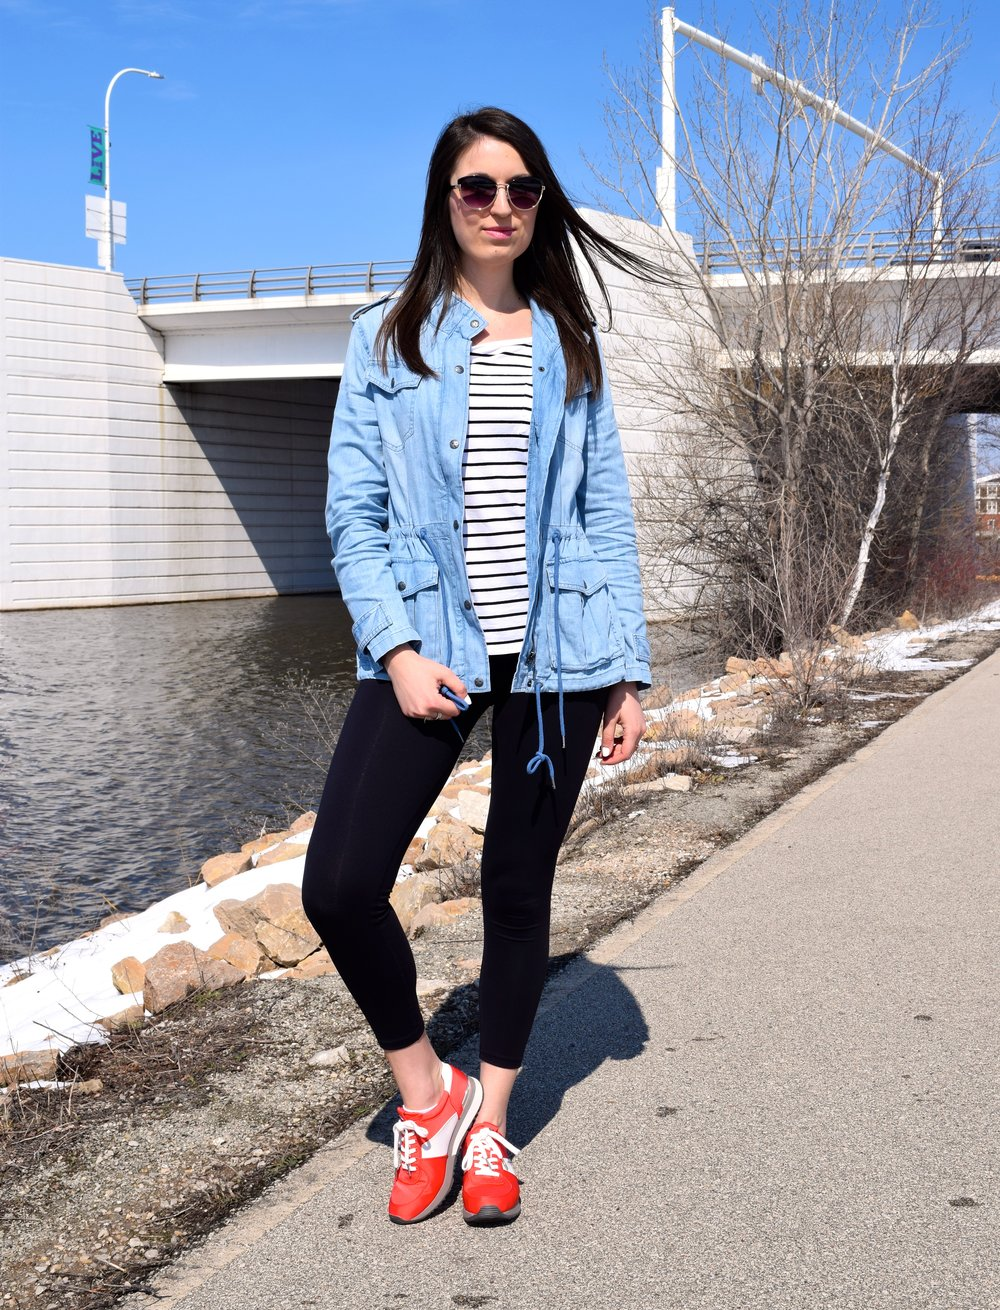 Denim Jacket//Stripes//Trainers